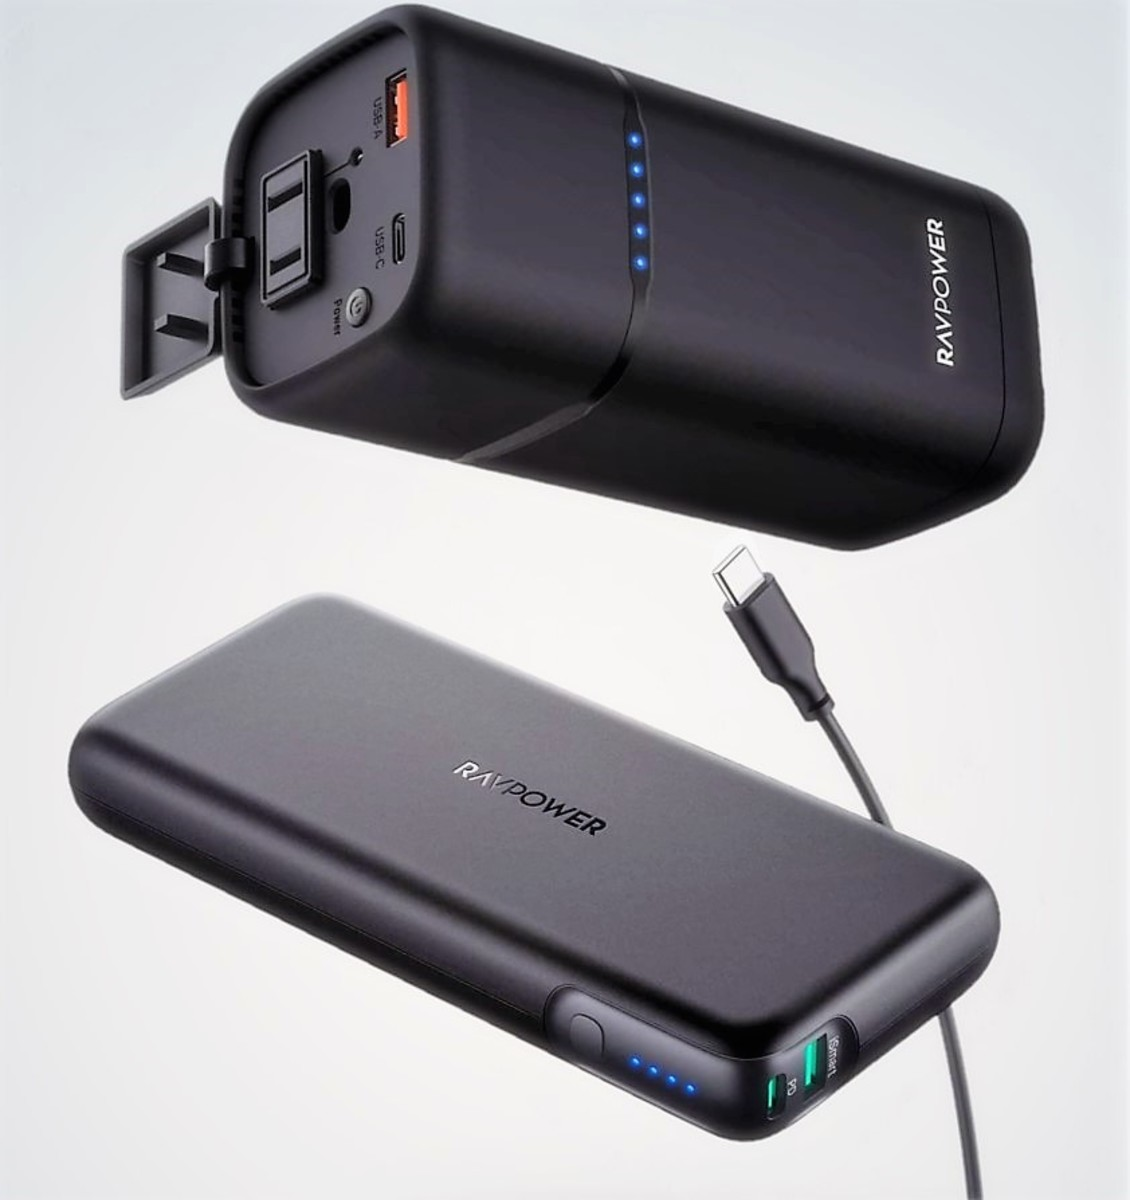 RAVPower 80W AC Power House (top) - RAVPower 60W PD Power Bank (bottom)